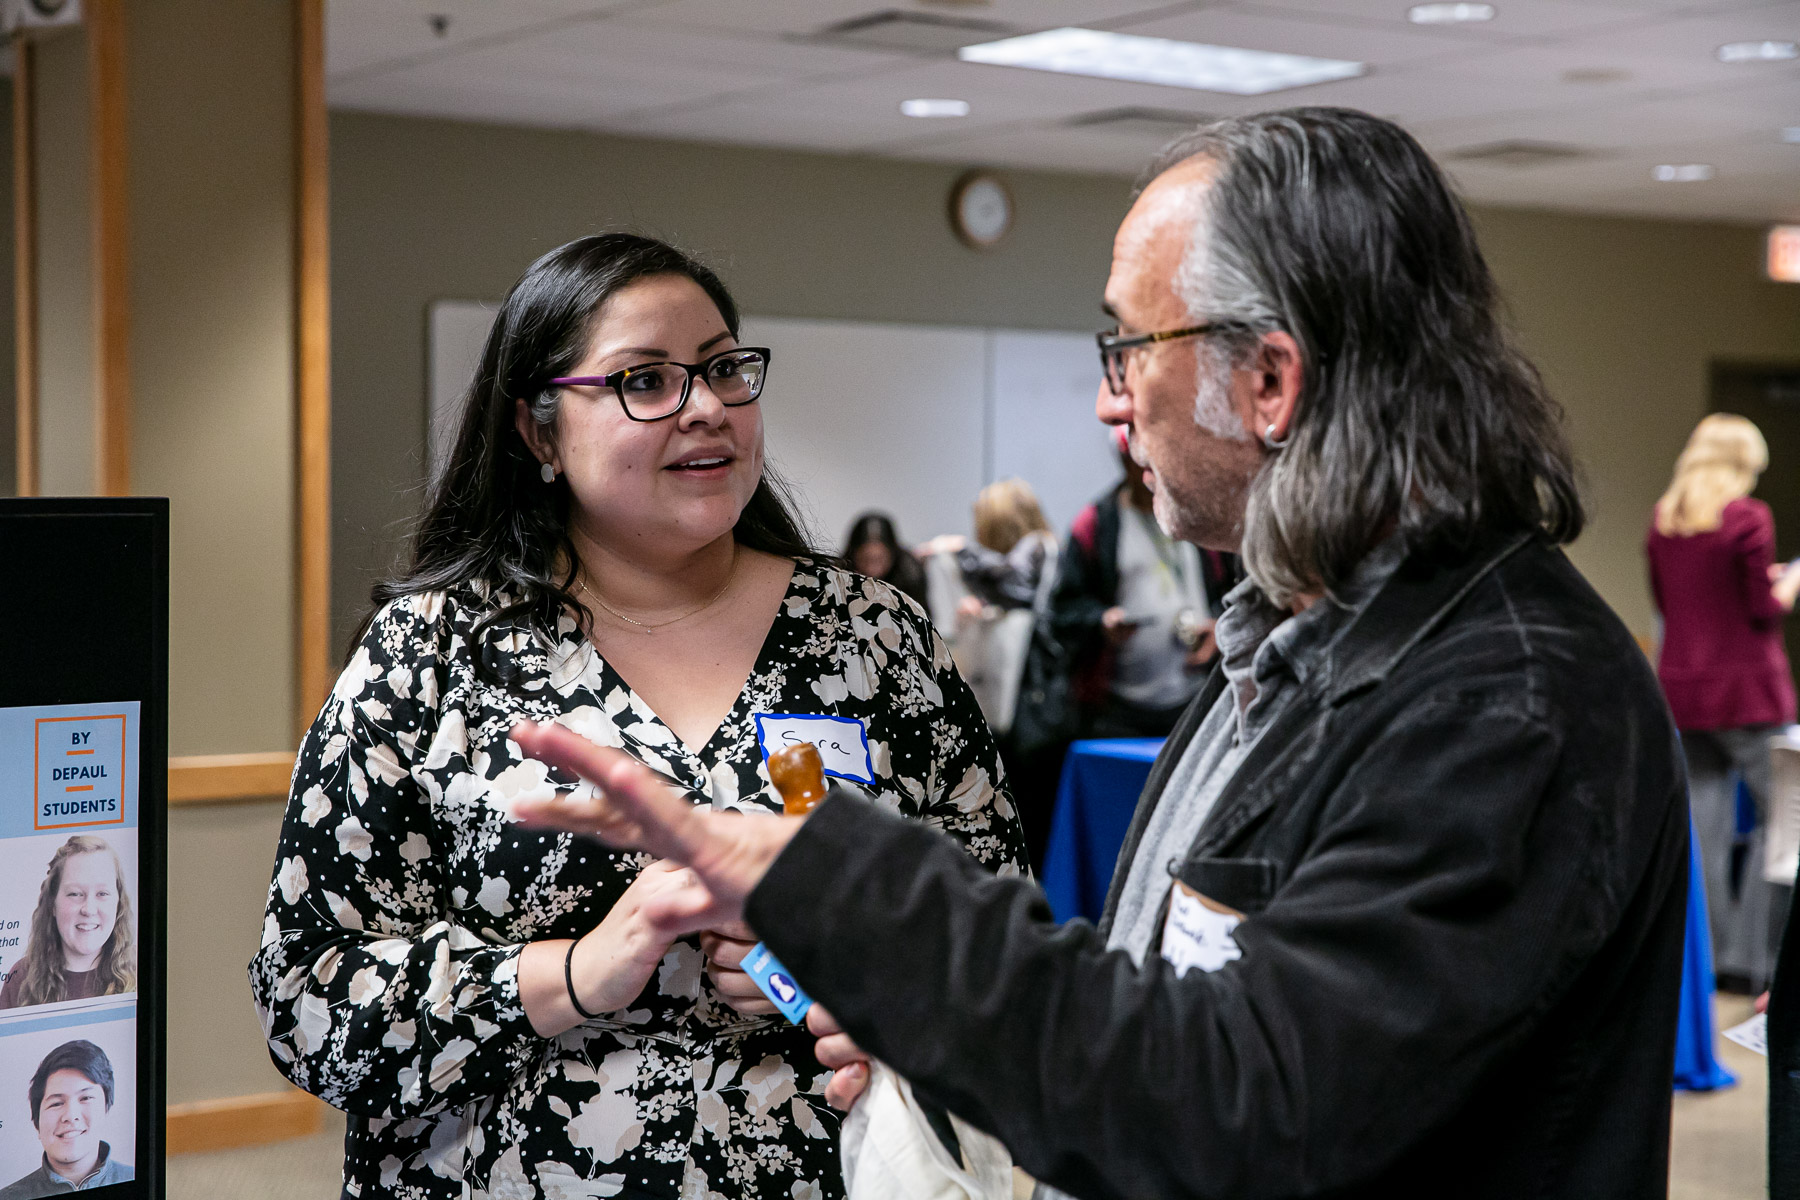 Sara Hernandez, assistant director for supplemental instruction in the Center for Teaching and Learning, talks with an attendee. (DePaul University/Randall Spriggs)